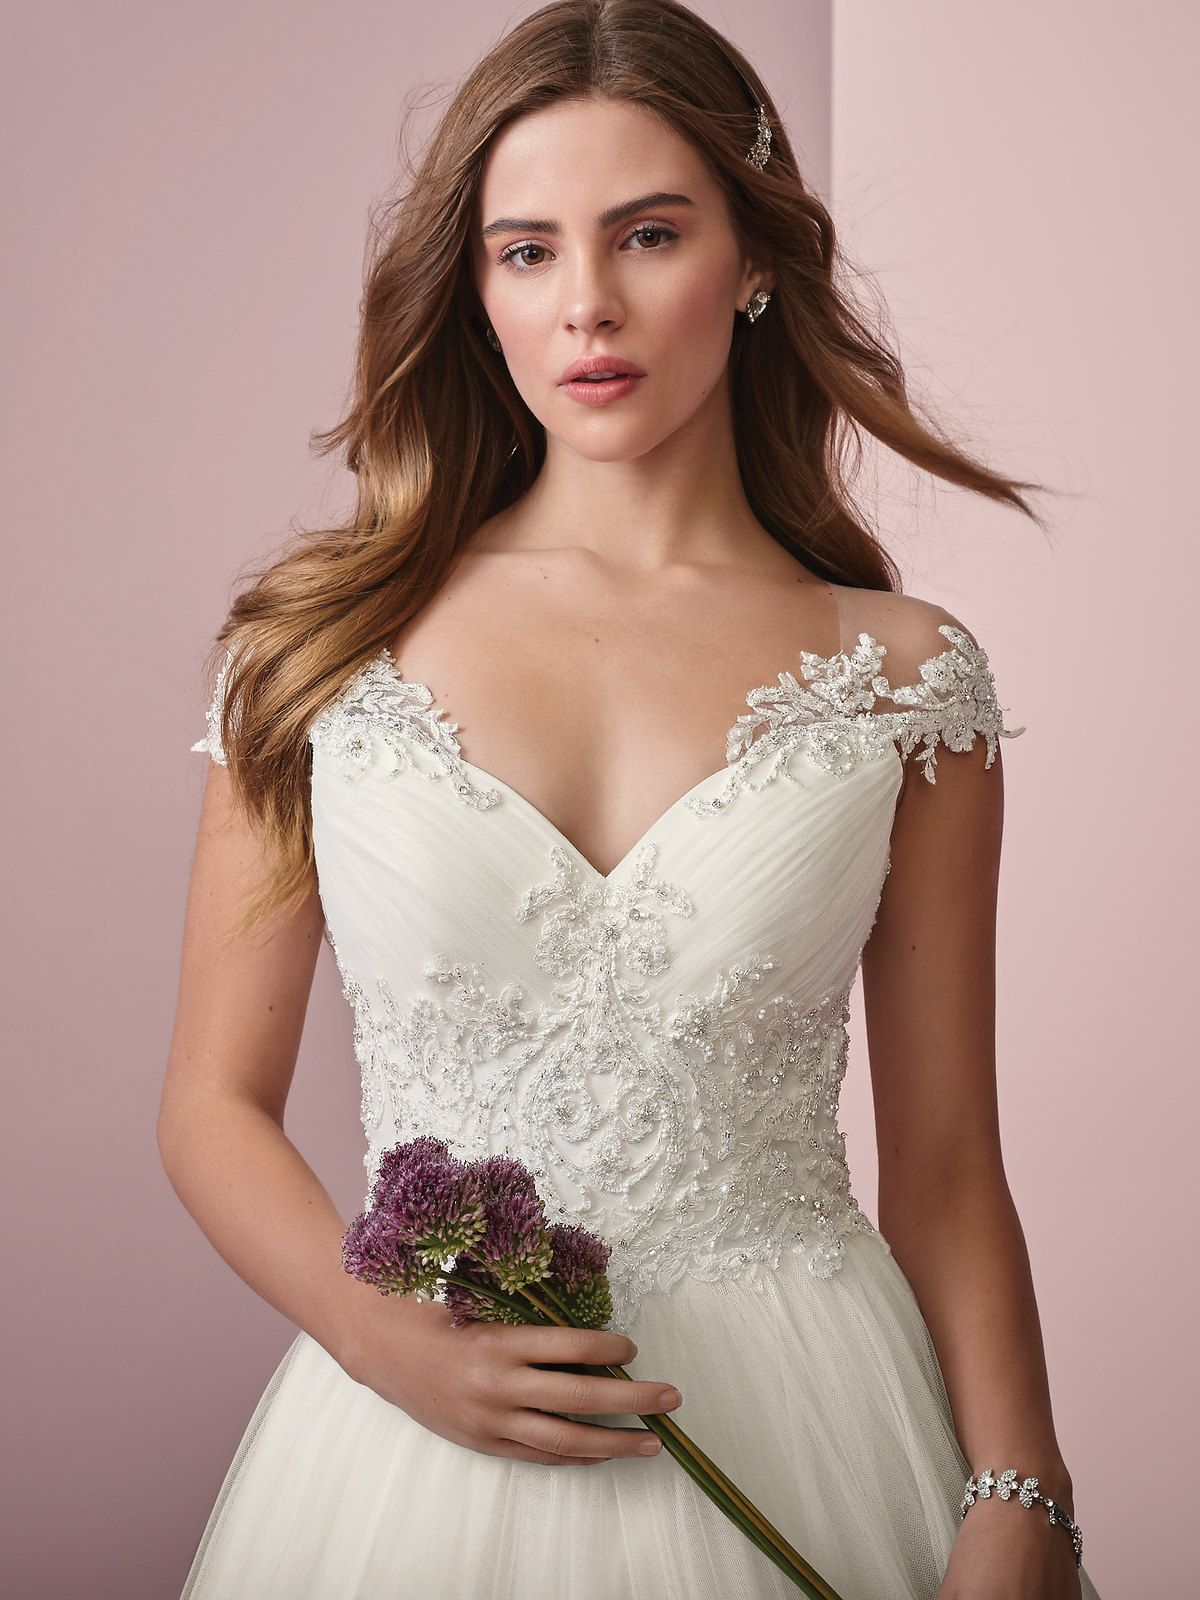 Wedding Dress Outlet Carol S Bridal Carlisle In 2020 Wedding Dress Outlet Wedding Dresses Satin Bridal Gowns